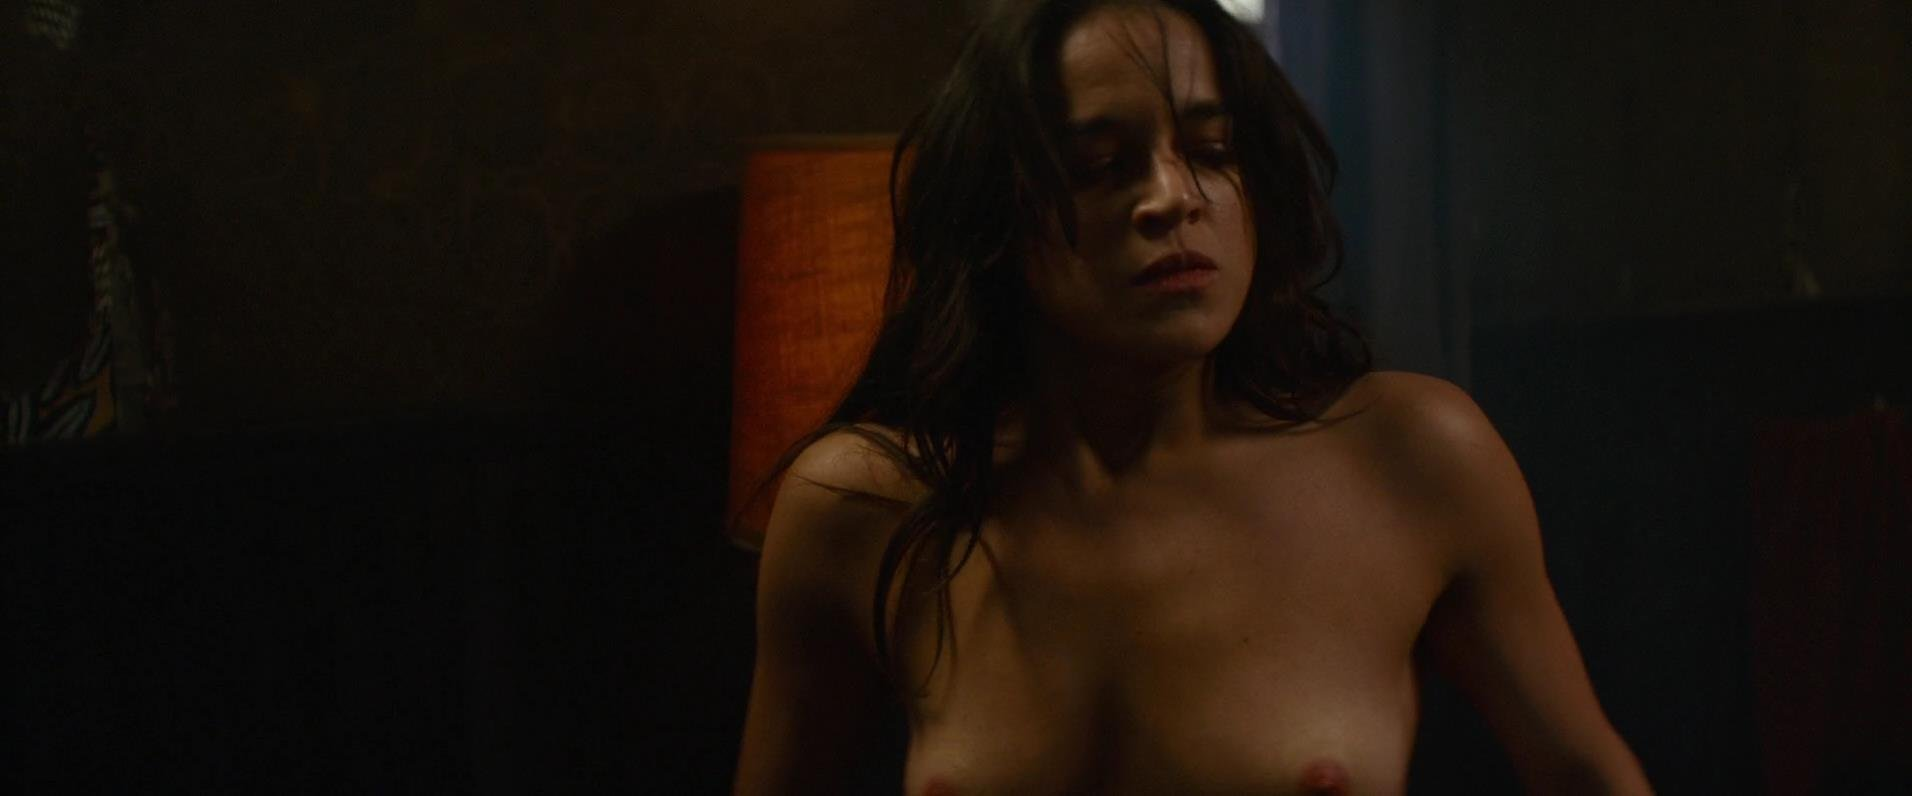 Opinion Michelle rodriguez naked assured, that